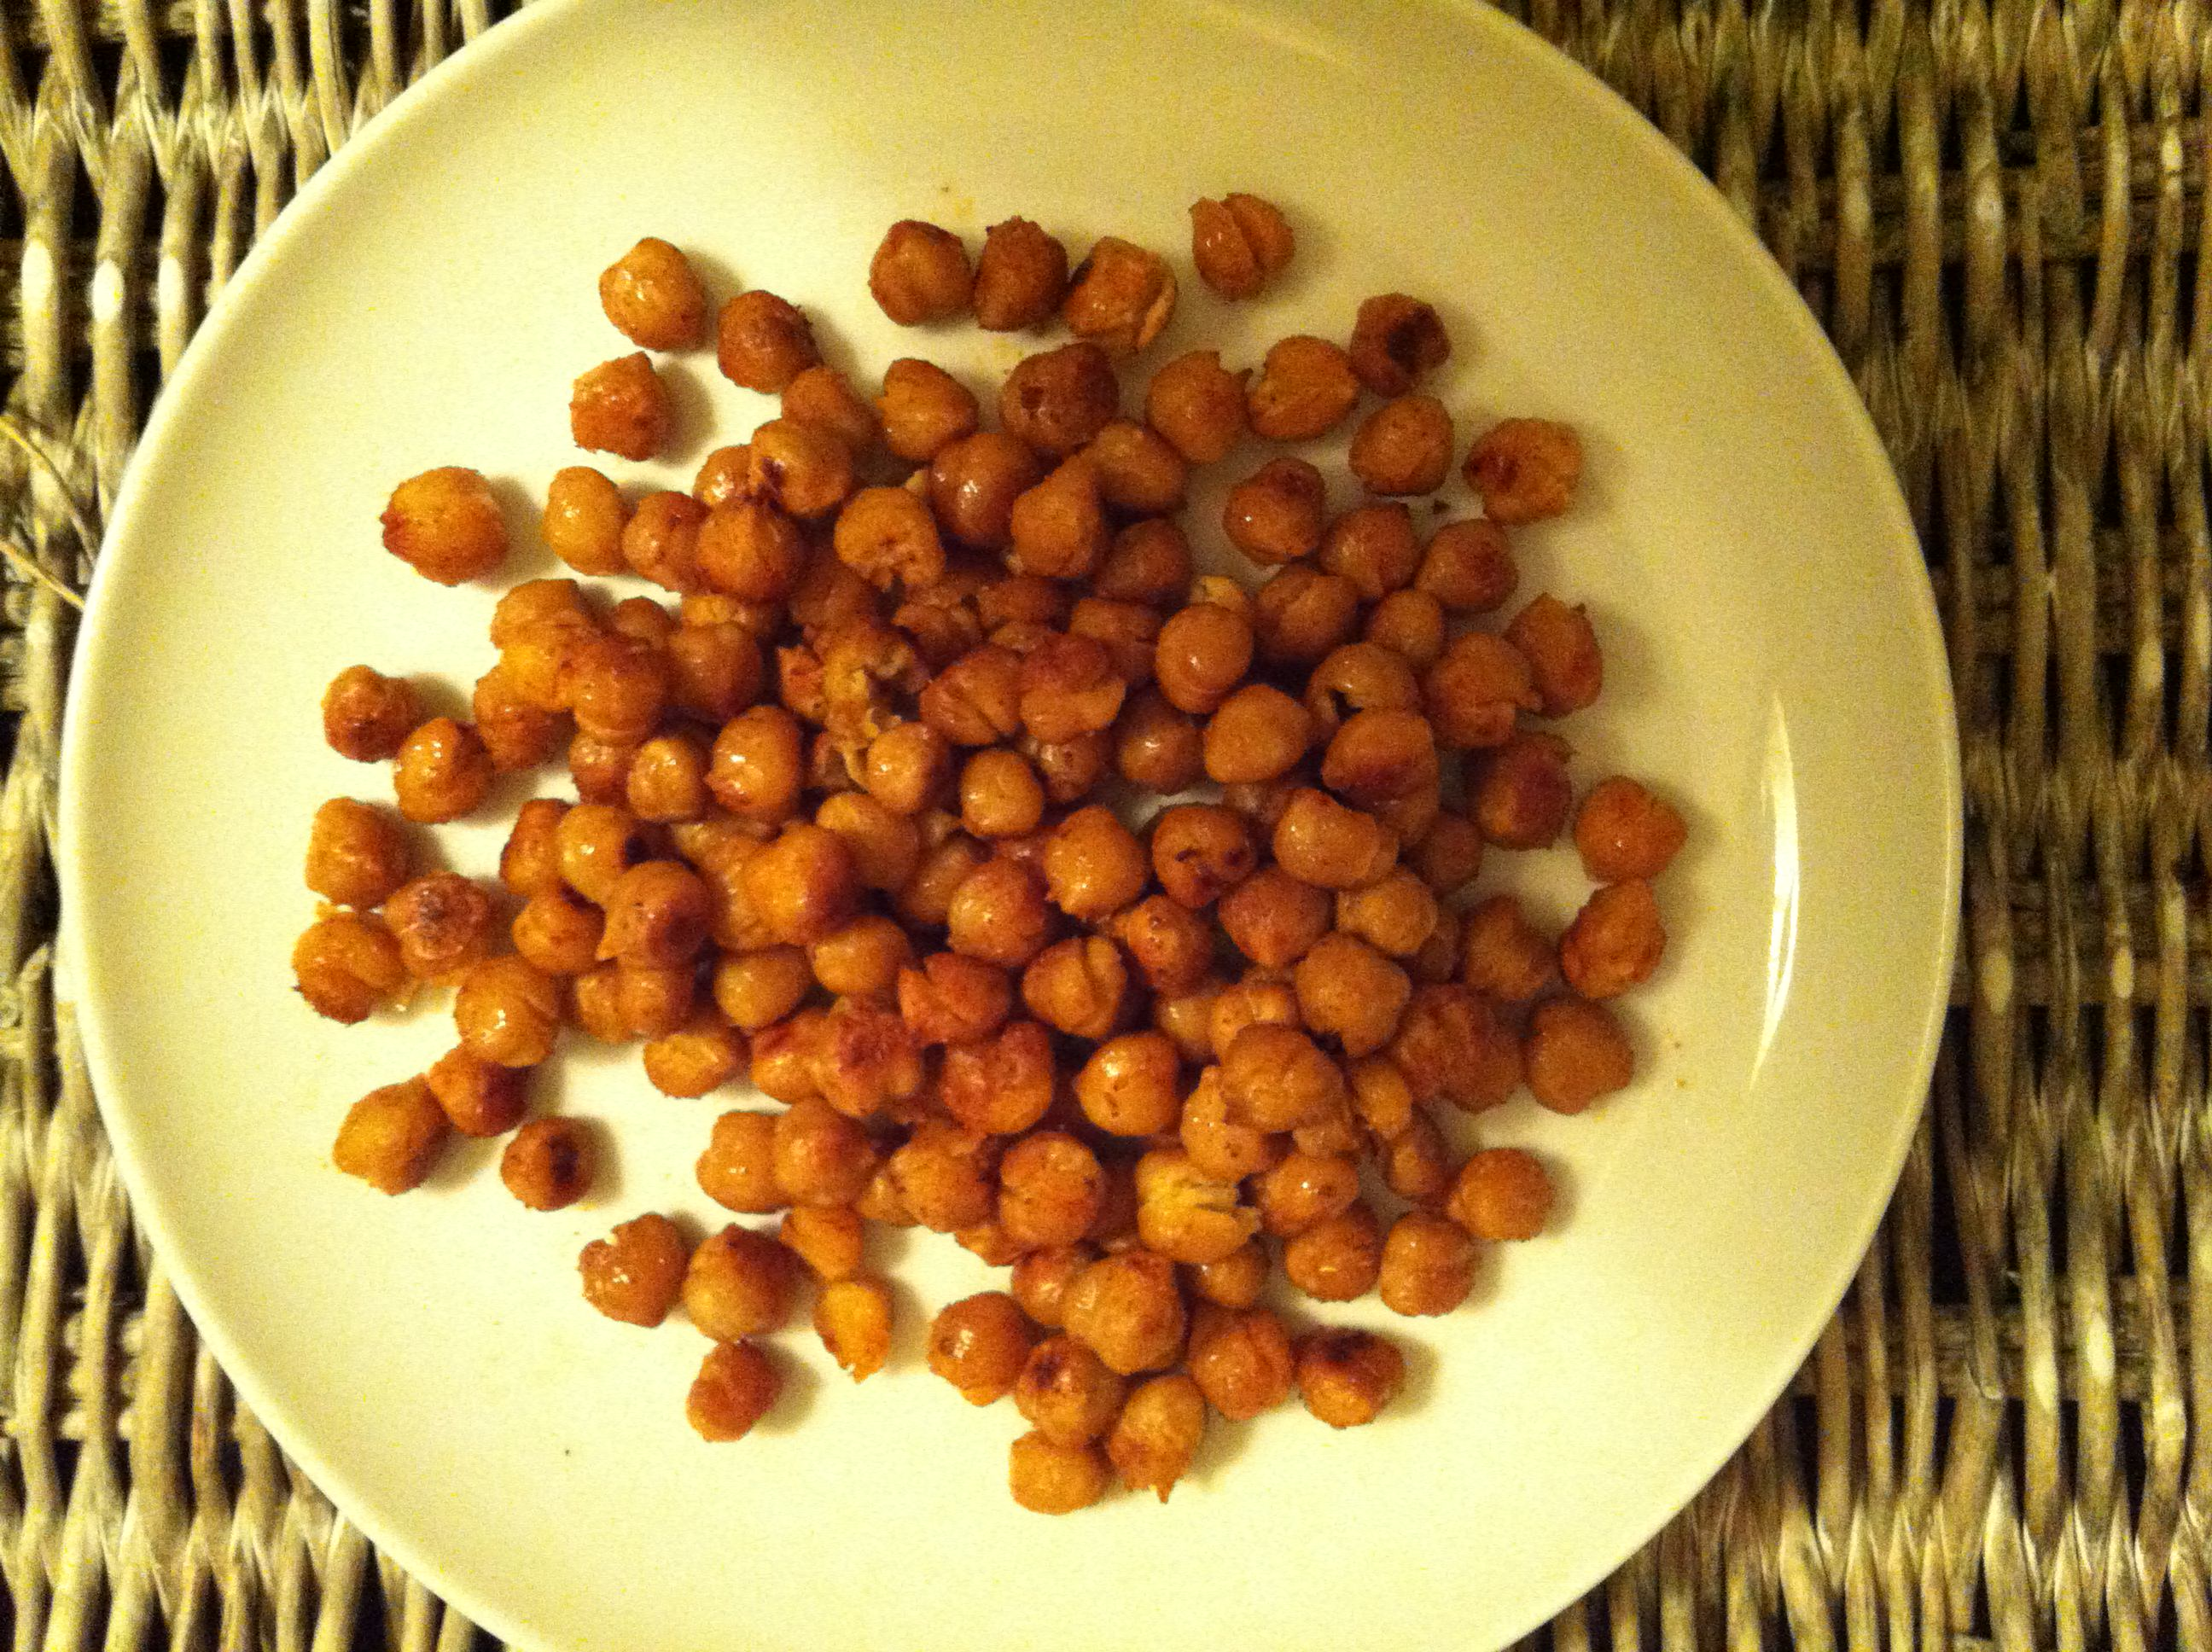 finished Roasted Chickpeas